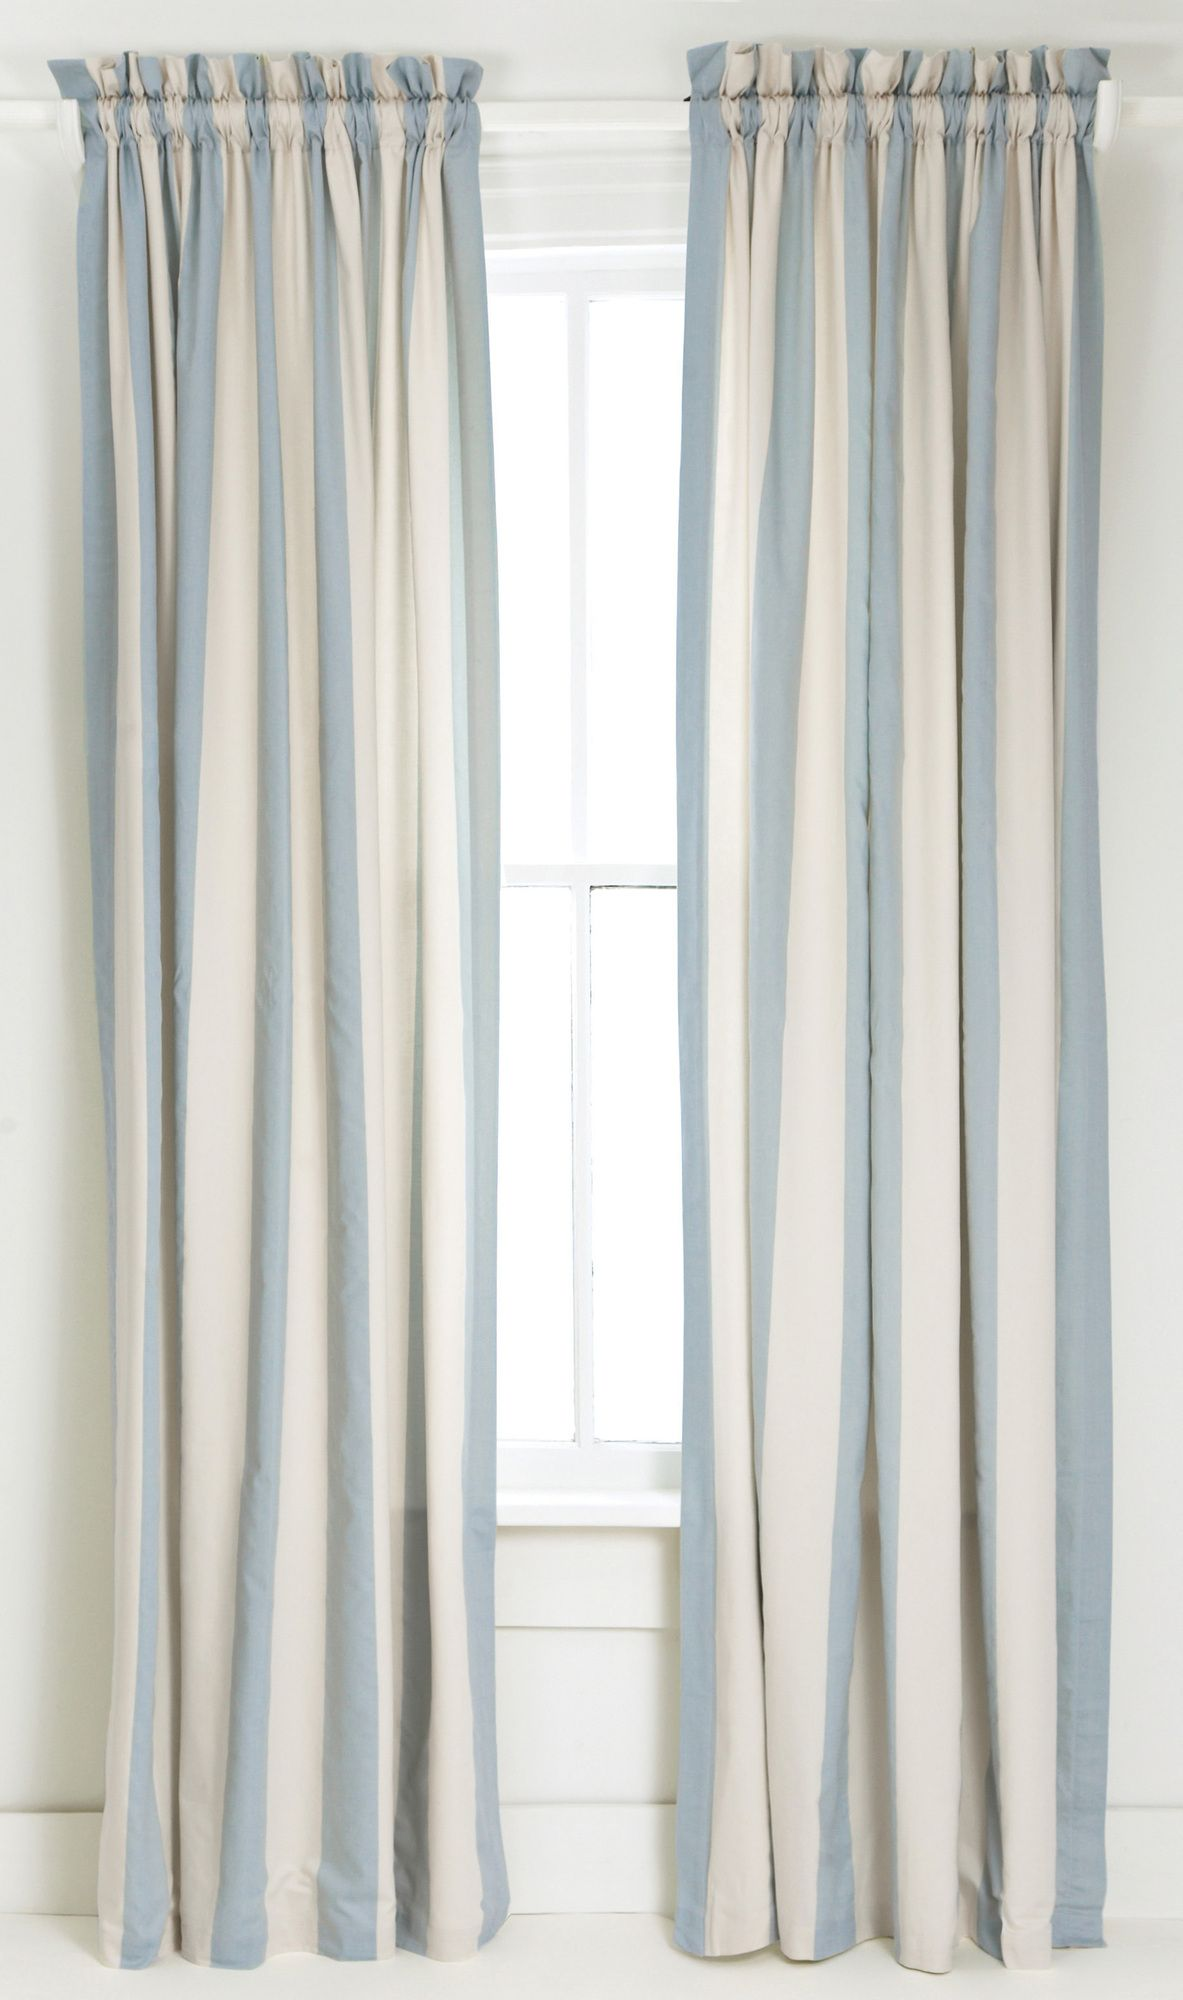 Blue and White Vertical Striped Curtain/Drape ...